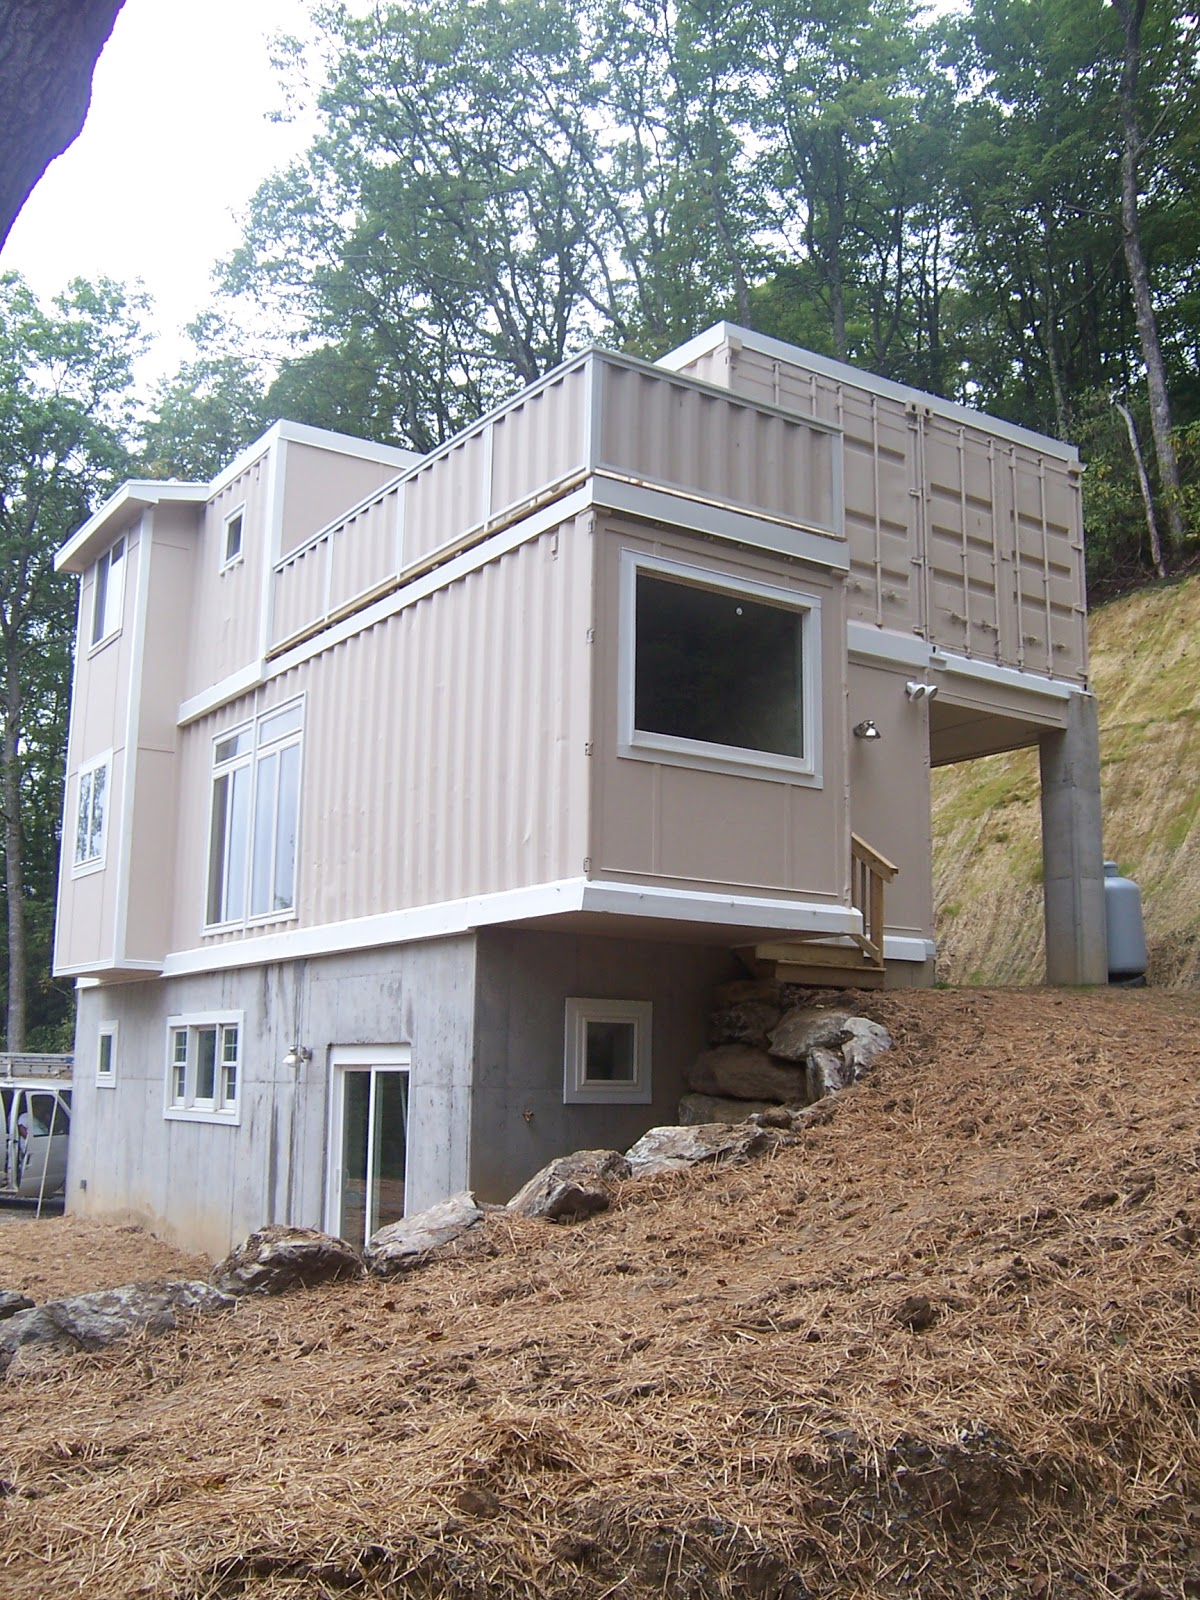 Shipping container homes high country green boxes dwellbox boone north carolina 5 - Storage containers as homes ...